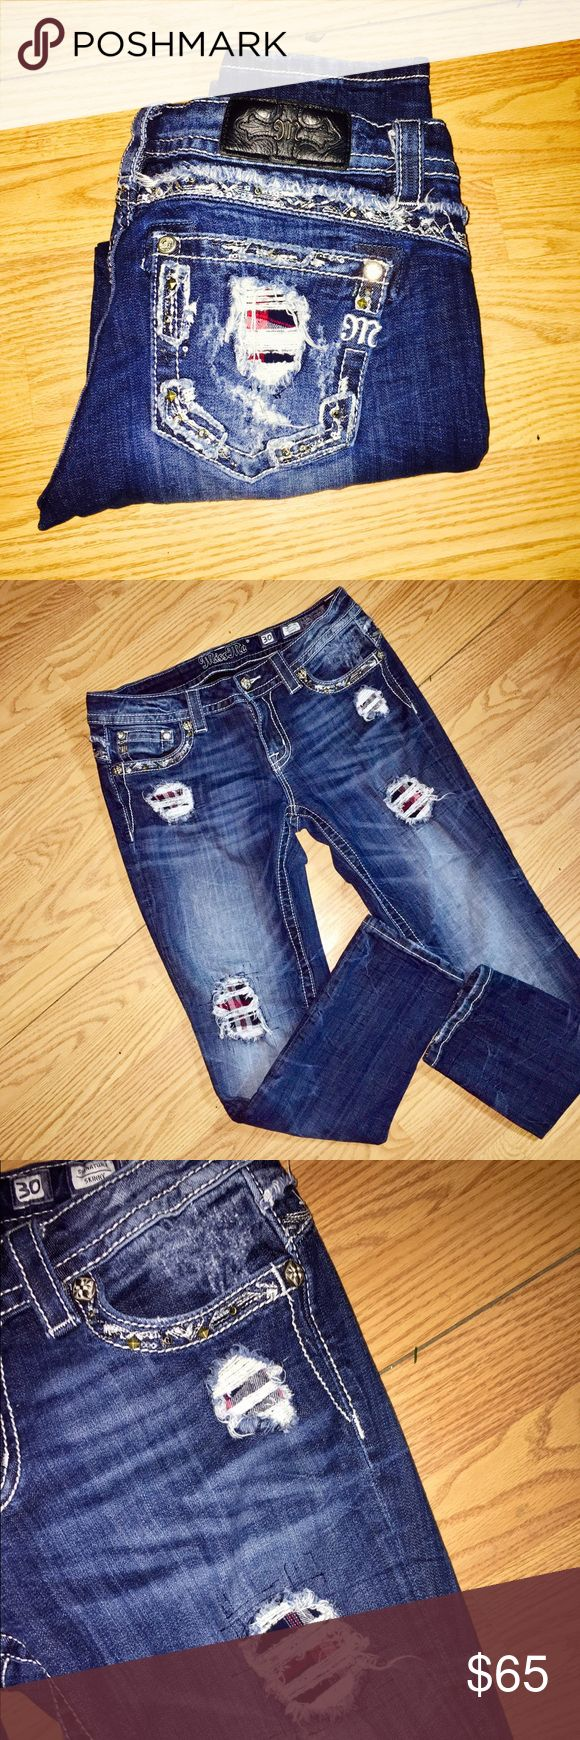 ❤️Miss Mes Size 30❤️ Size 30 skinny inseam 33. Factory Distressed with red flannel put in place under holes. These are rare and super cute 😍 trade for other Miss mes or rocks size 29 or 30 Miss Me Jeans Skinny